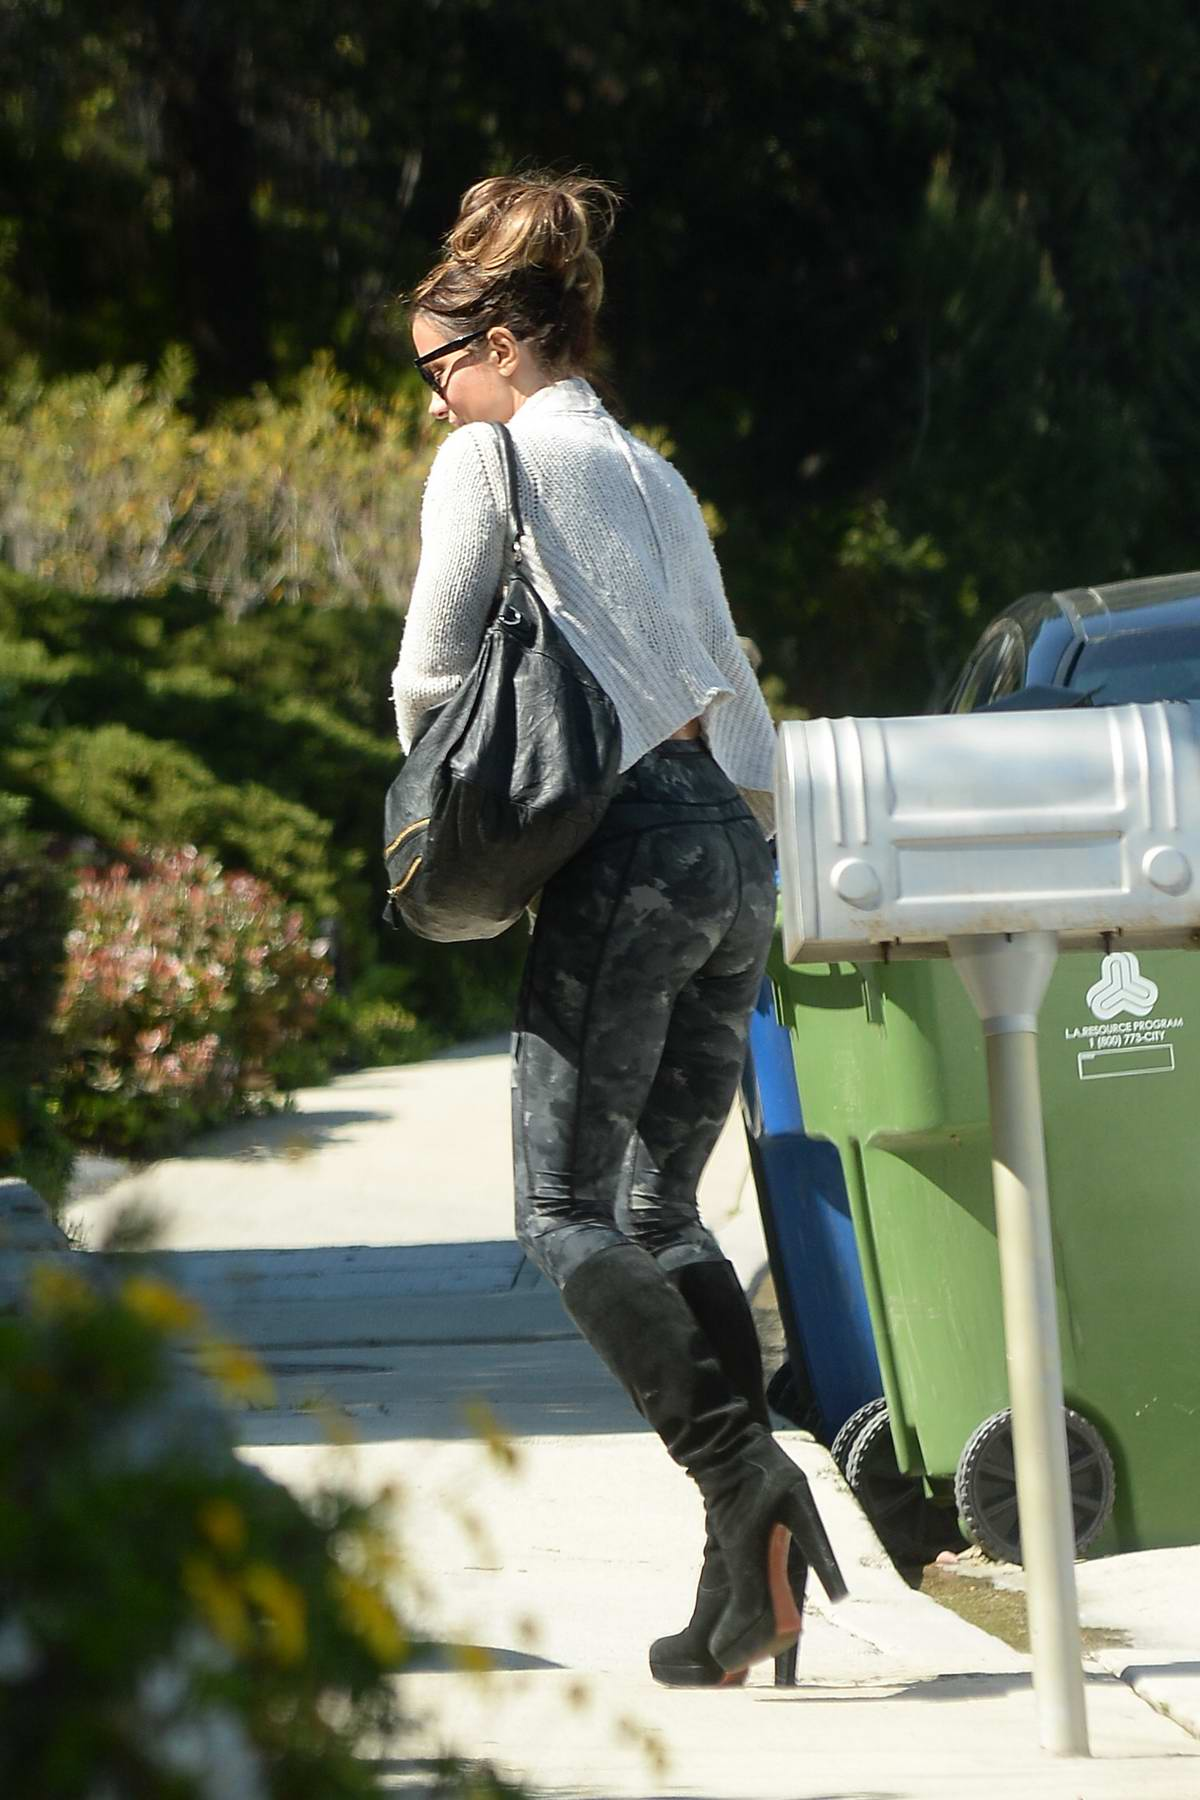 Kate Beckinsale rocks camo leggings as she steps out after a workout session in Los Angeles